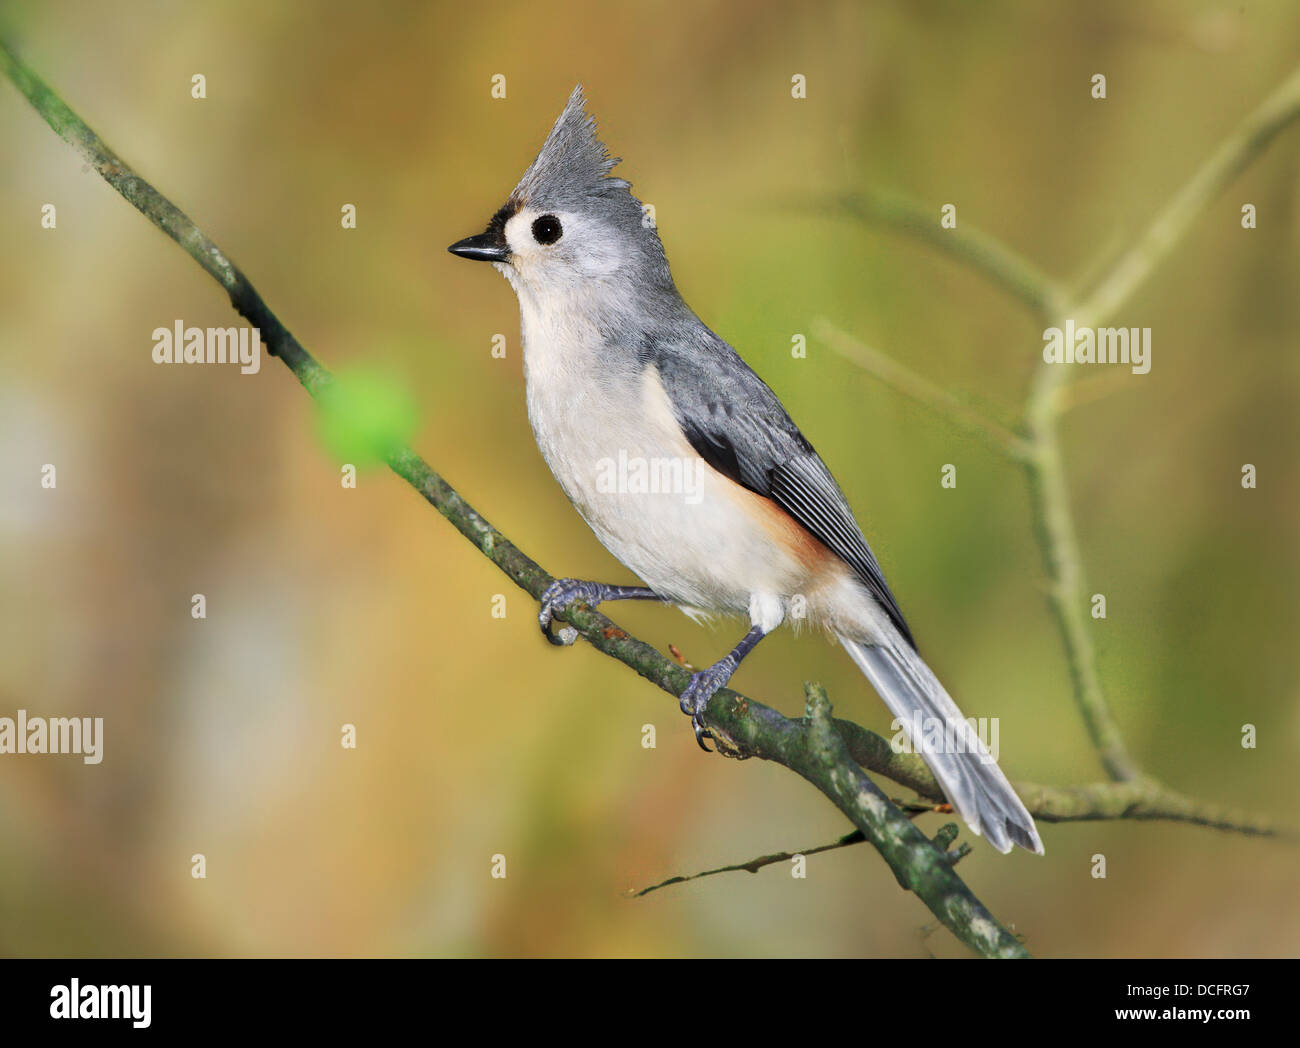 A Cute Little Bird, The Tufted Titmouse, Nicely Posing With It's Crest Raised As If For A Portrait, Parus bicolor Stock Photo